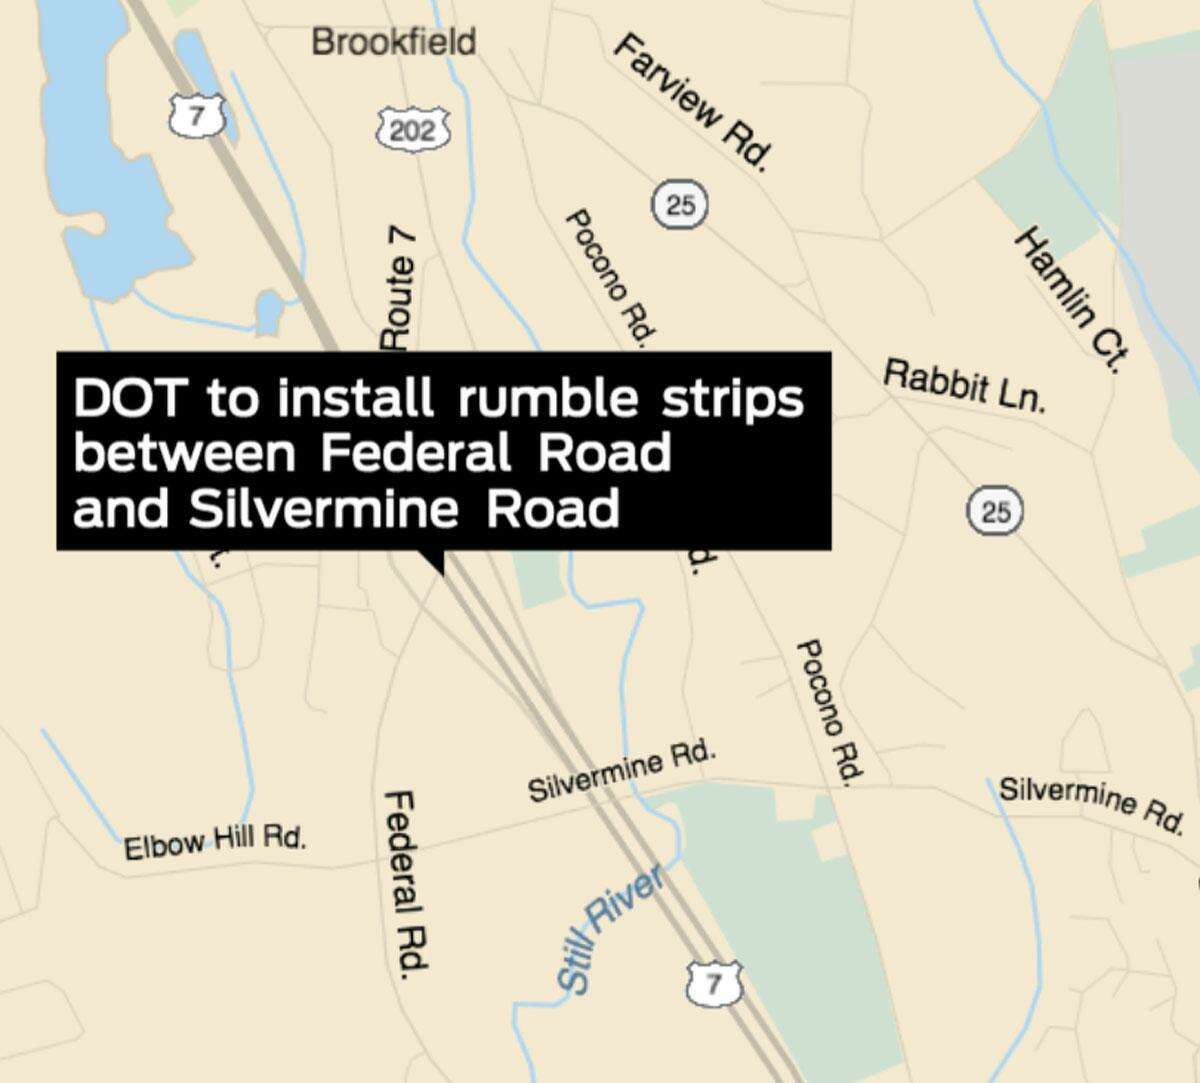 The Connecticut Department of Transportation plans to install rumble strips along Route 7 between Federal Road and Silvermine Road overnight Friday, Nov. 20, and Saturday, Nov. 21.